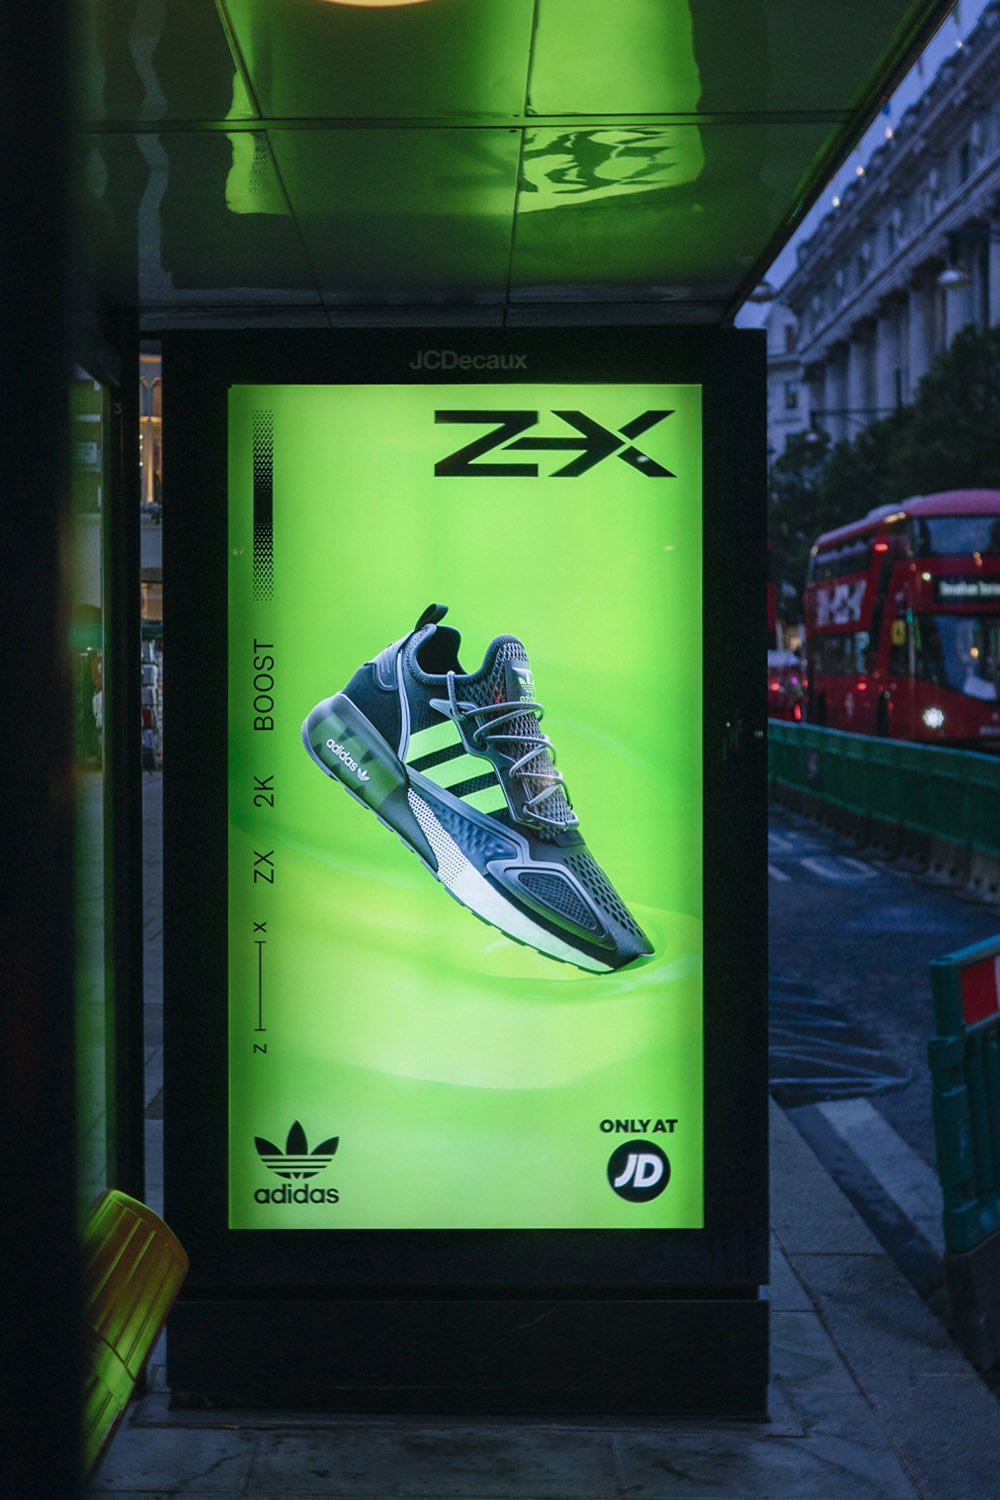 outdoor_london_busstop_adidas_Zx_triptych_03